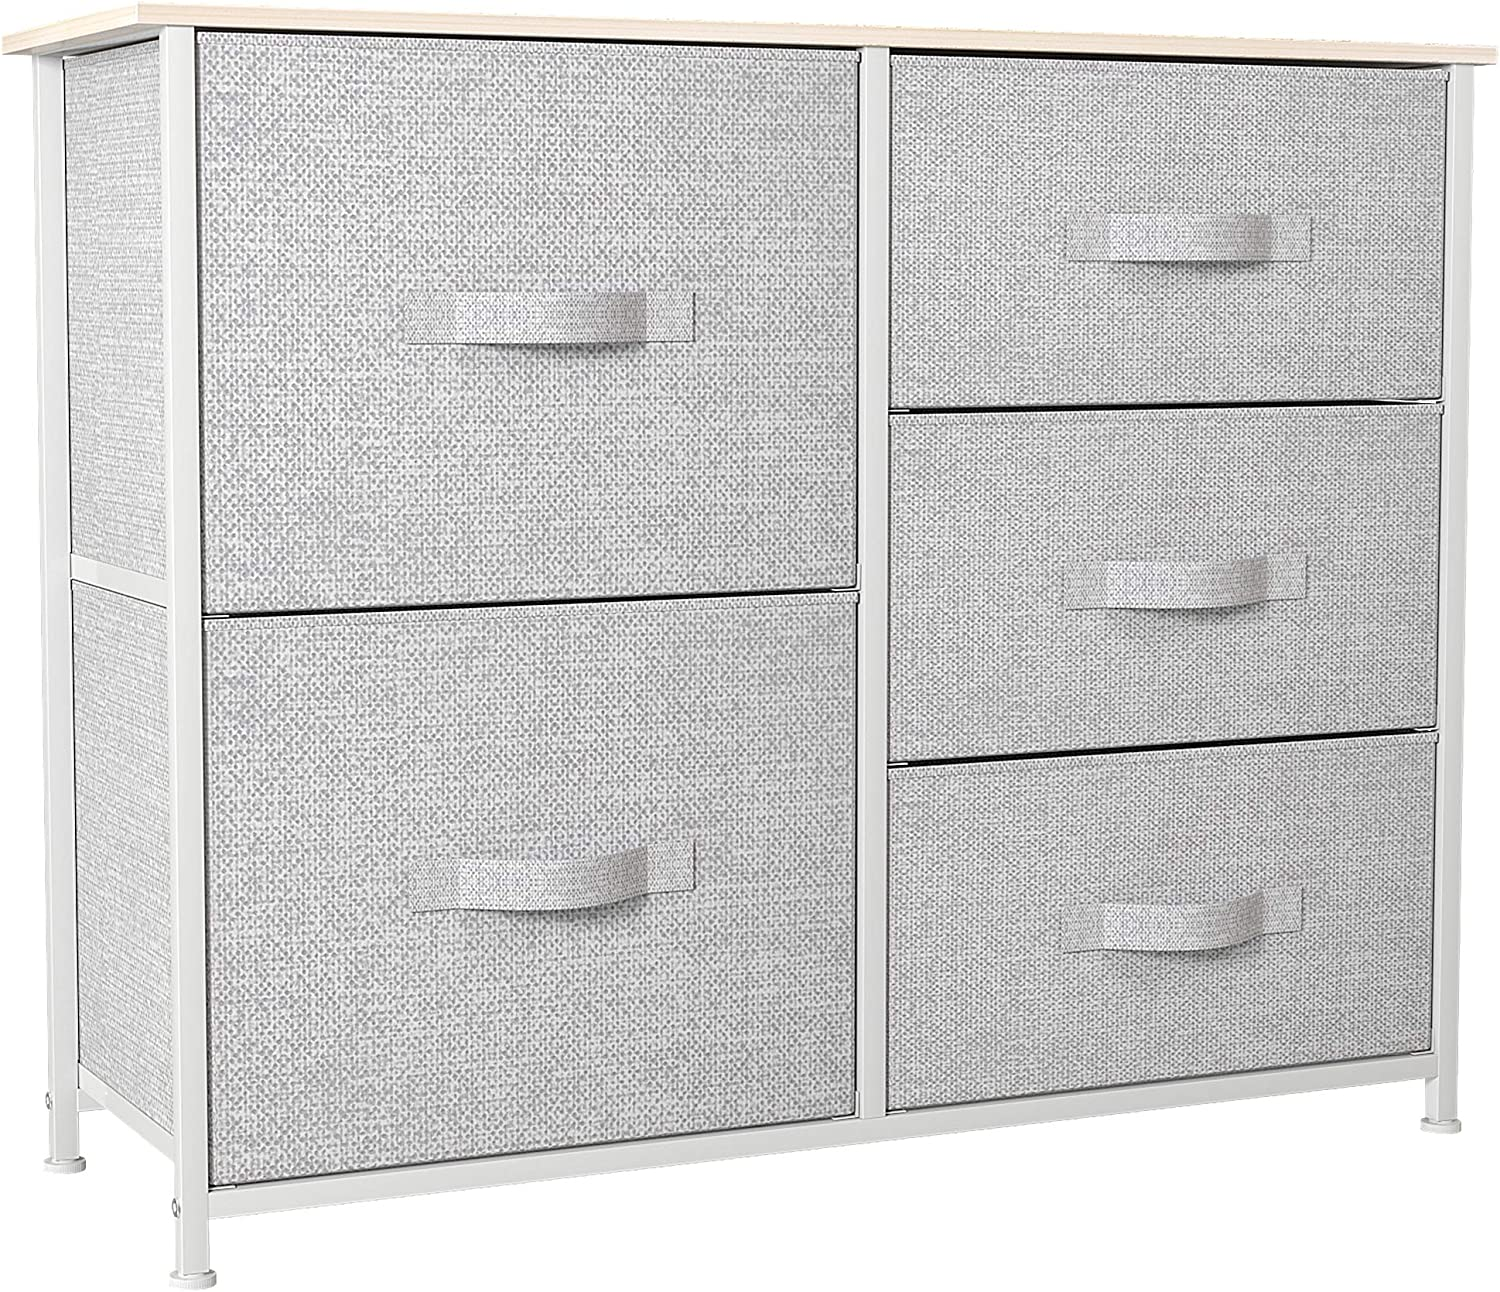 YITAHOME Dresser with 5 Drawers Tower - Fabric Large wholesale discharge sale Storage Organize